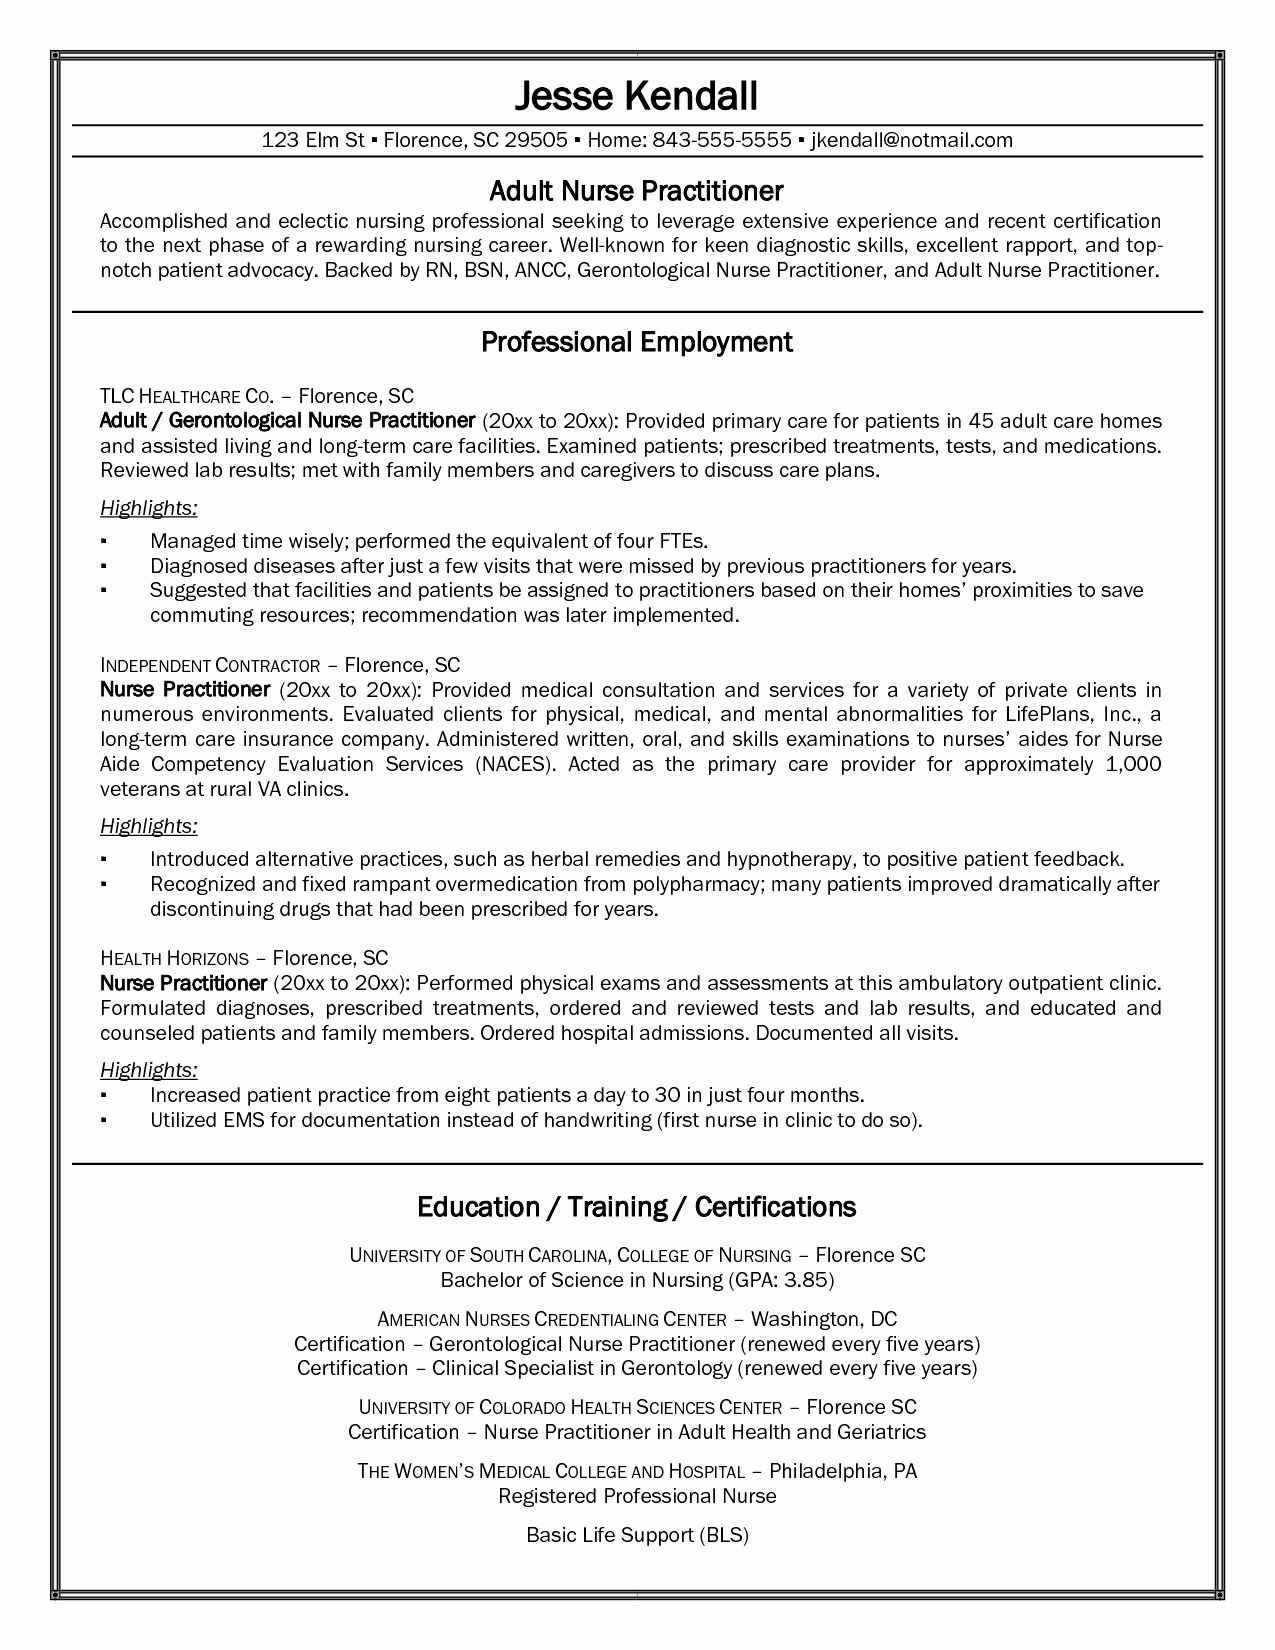 Nurse Practitioner Resume Examples - Award Winning Resumes 56 Beautiful Initiative Resume Examples